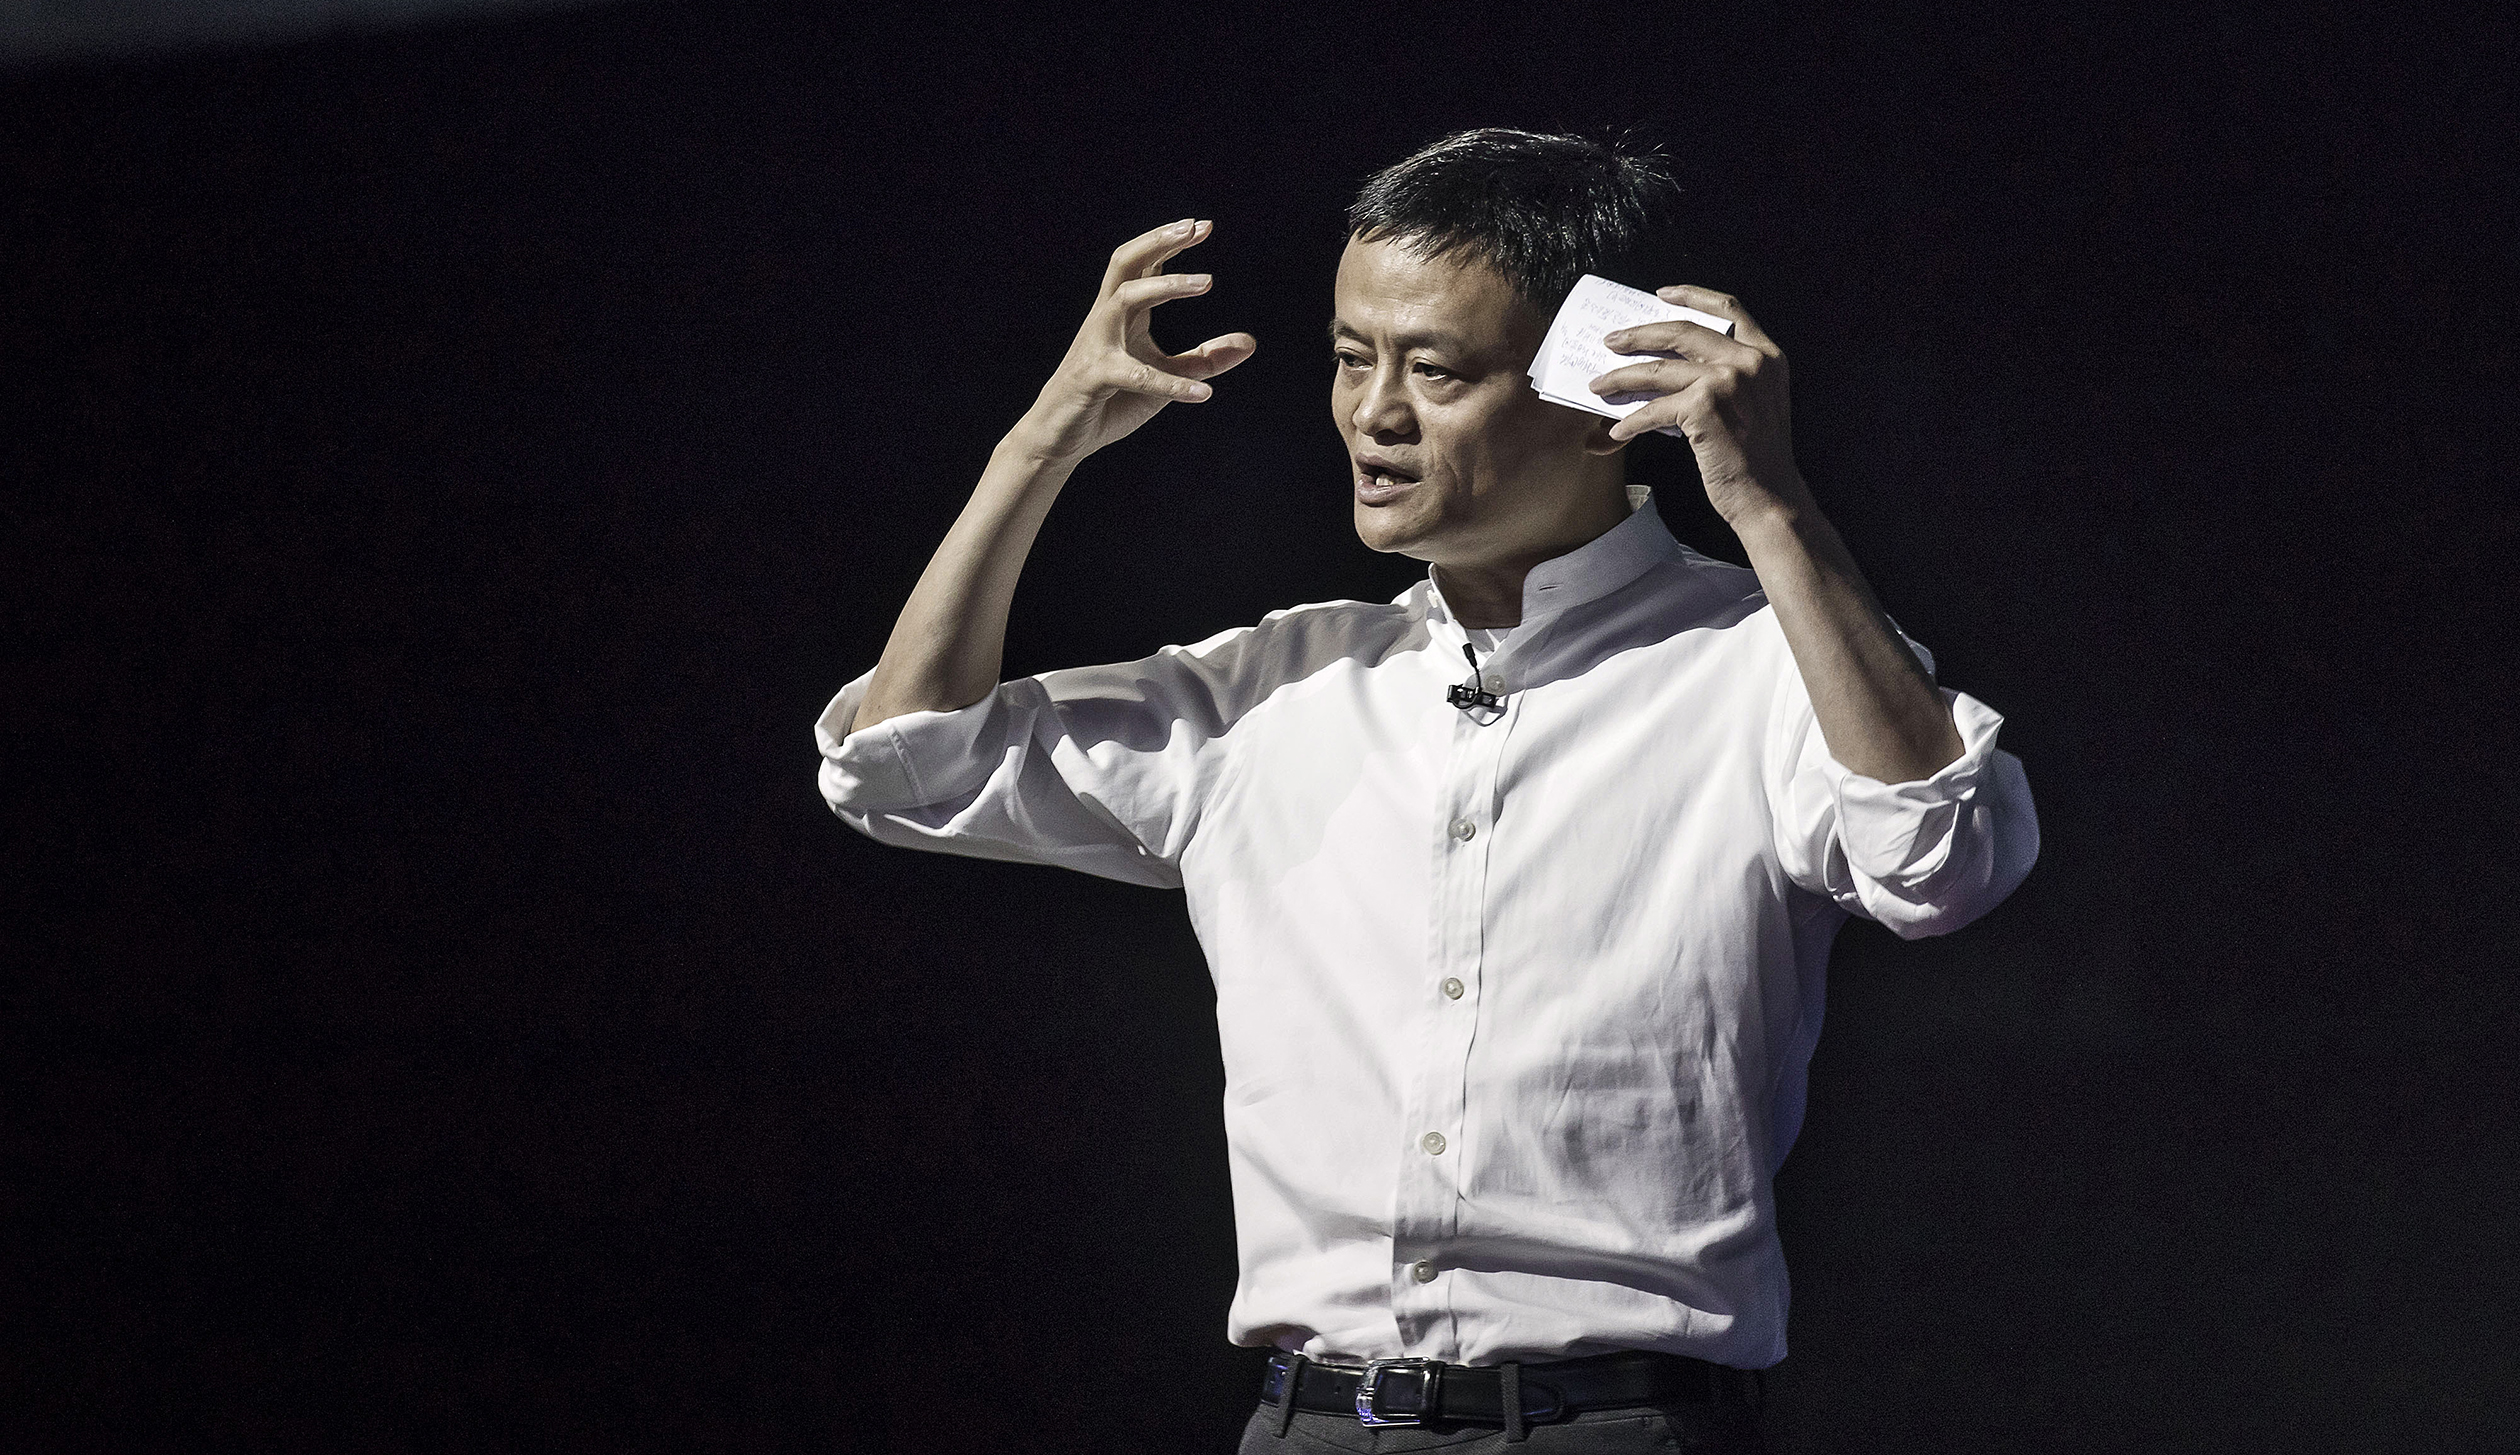 Alibaba Chairman Jack Ma and Other Key Speakers at the Alibaba Computing Conference